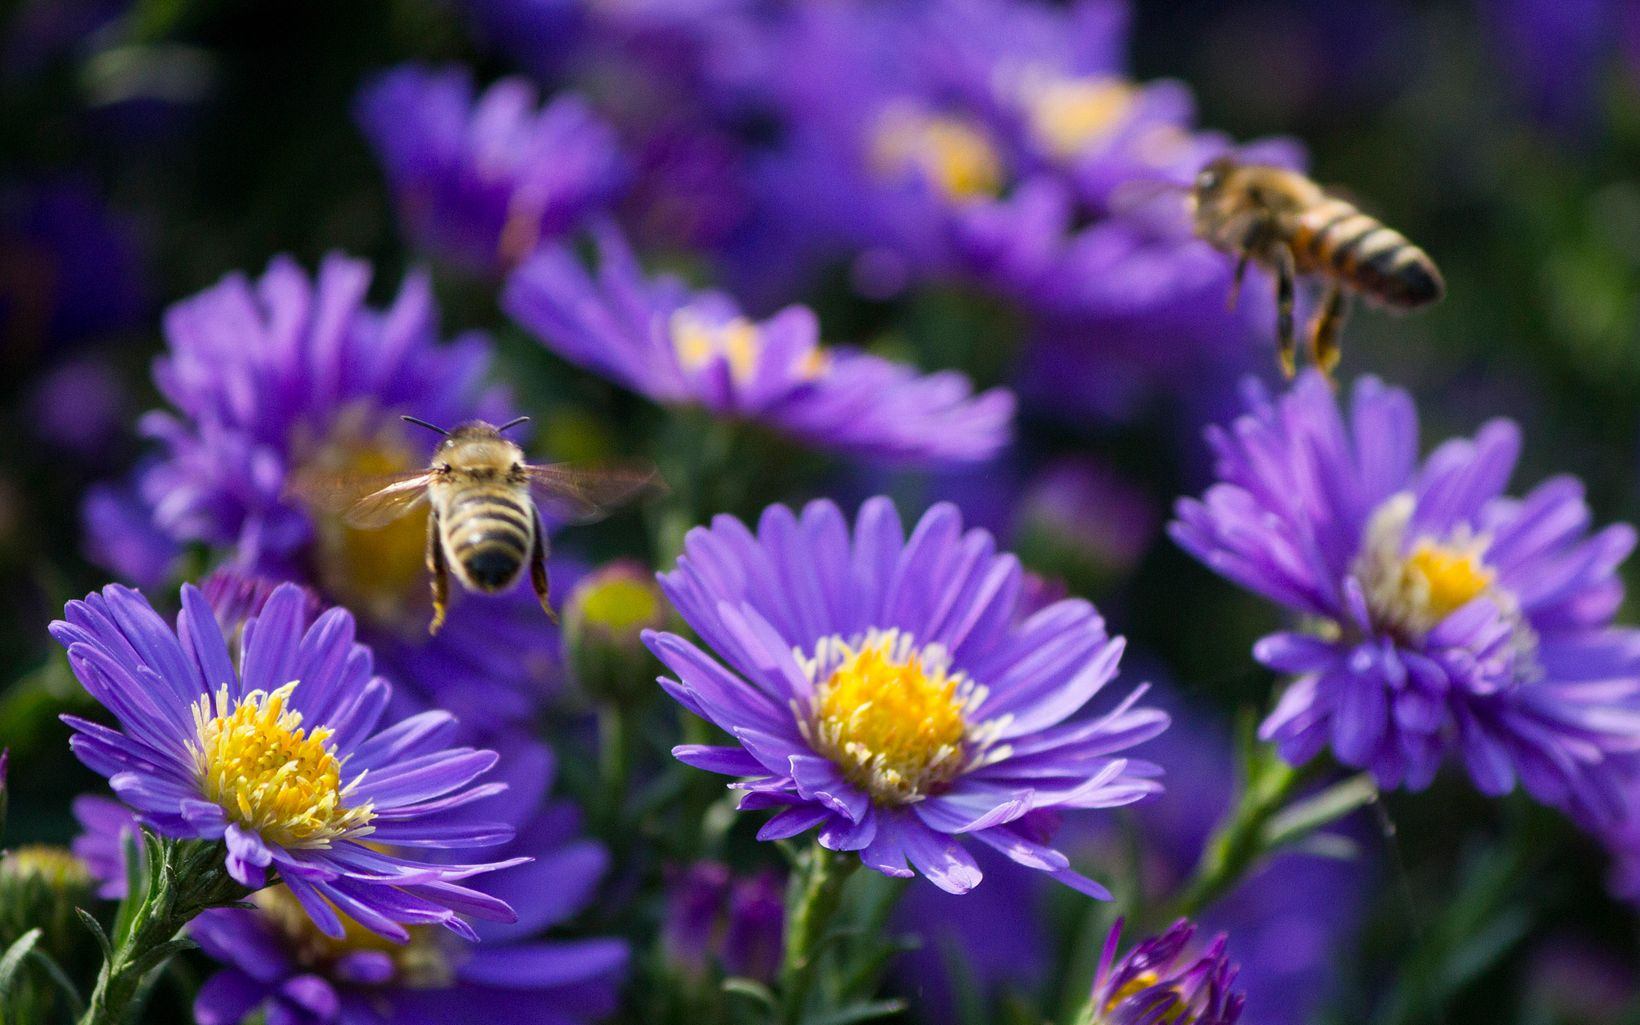 Two bees hover above a group of flowers growing in a yard in Wyoming.